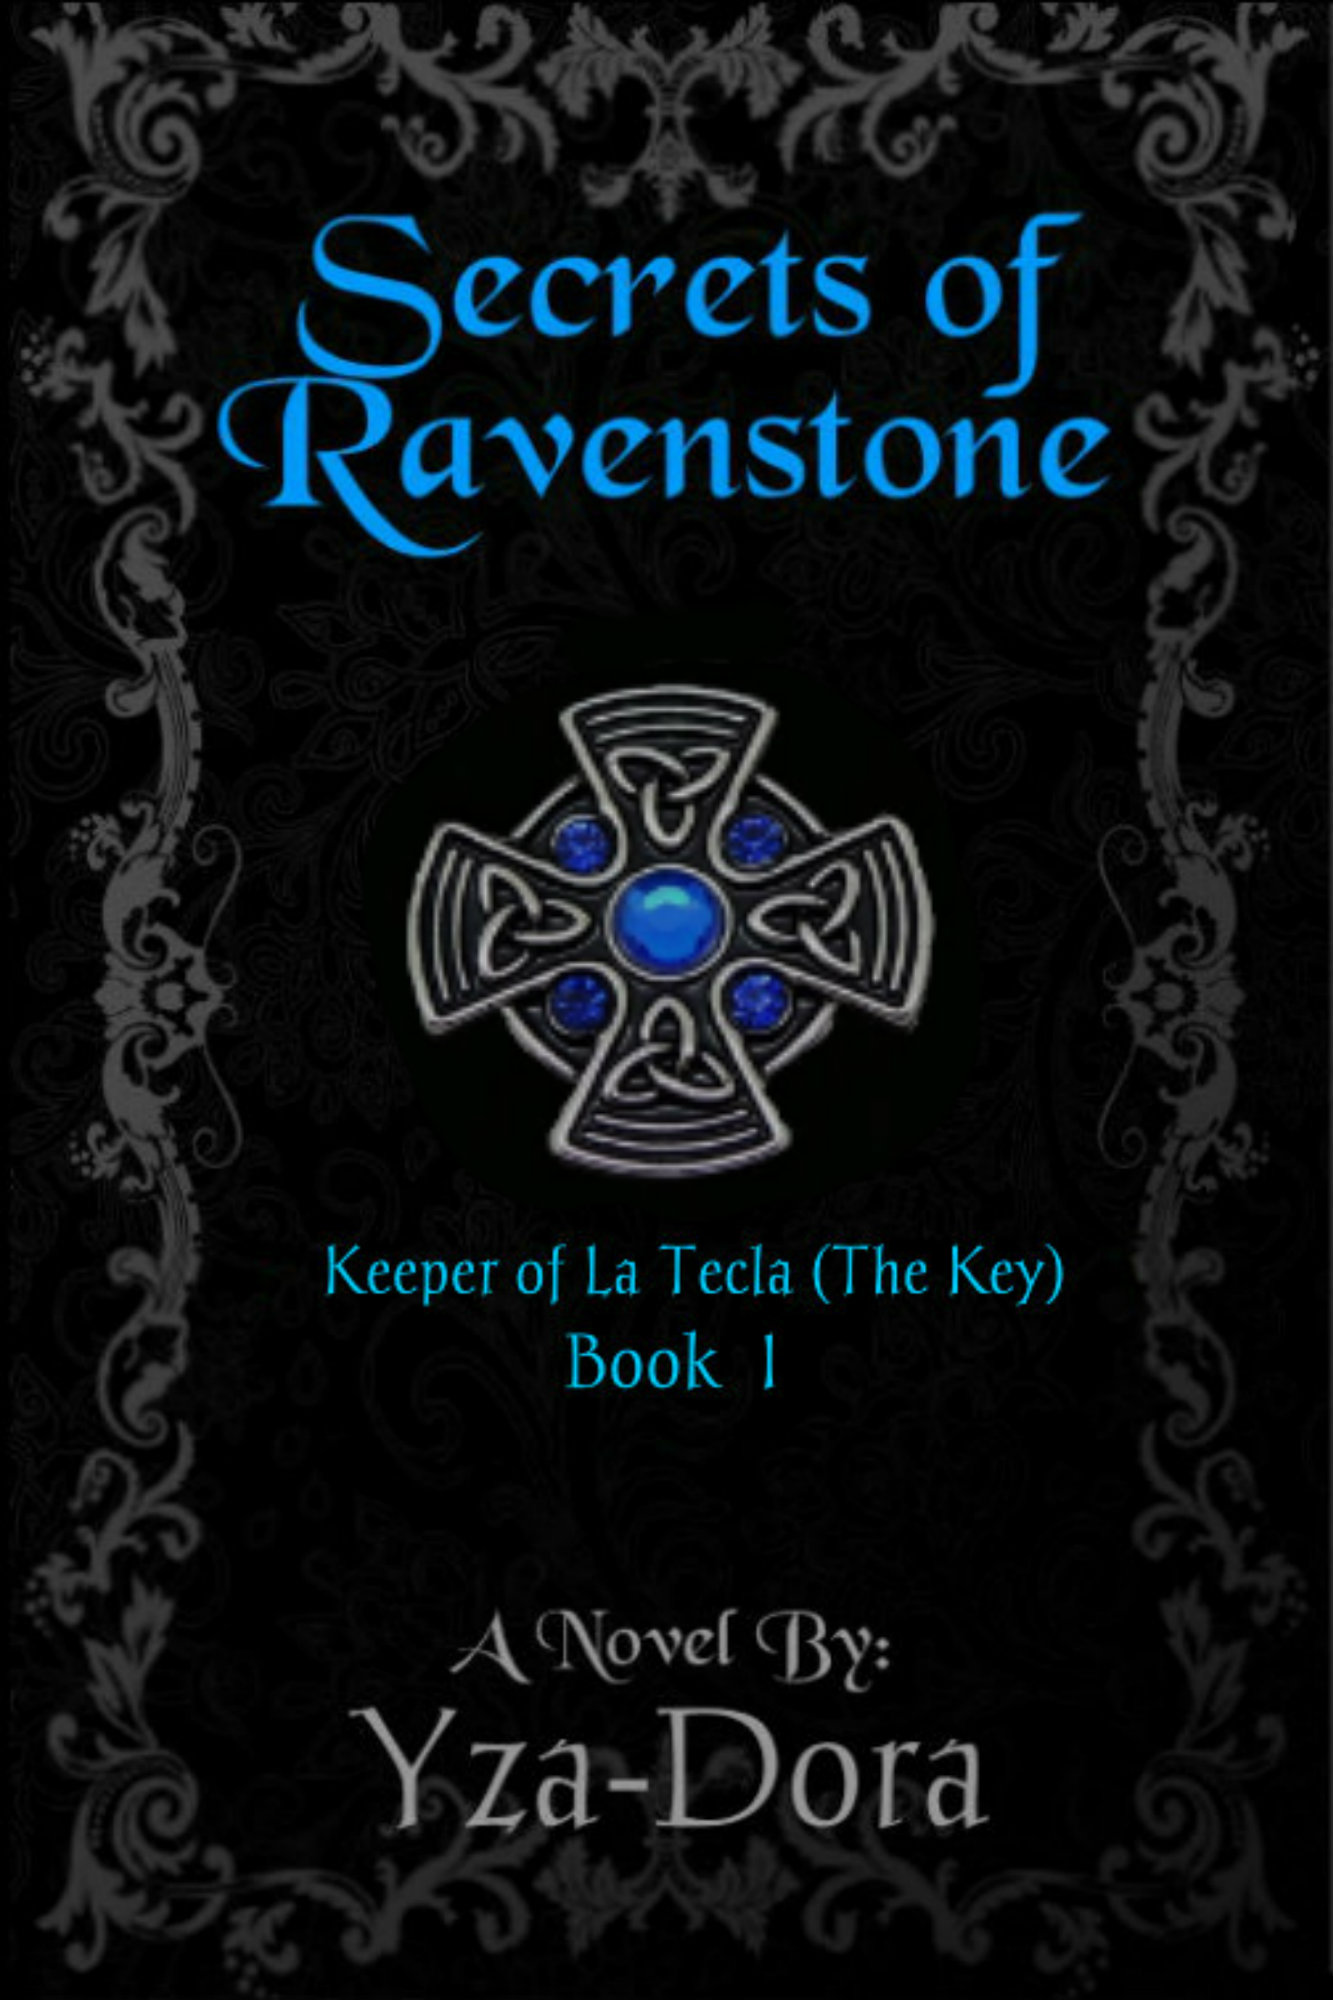 Secrets of Ravenstone by Yza-Dora